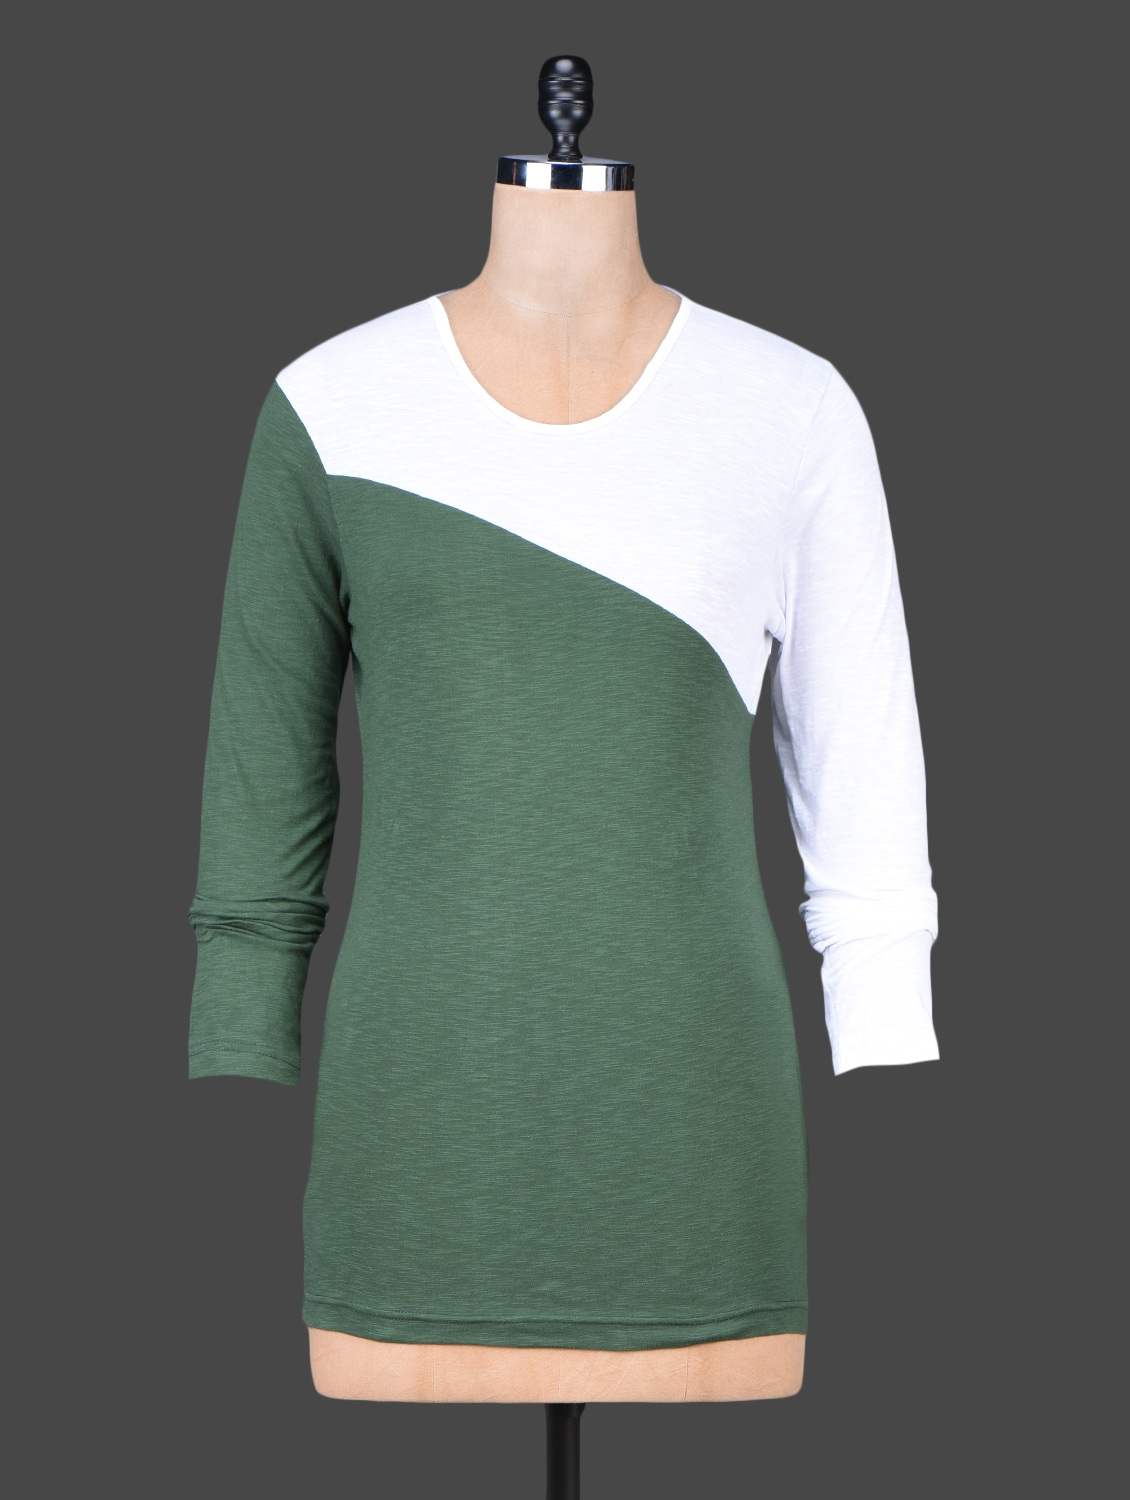 Long Sleeves Colour Block Cotton Top - Trend Arrest